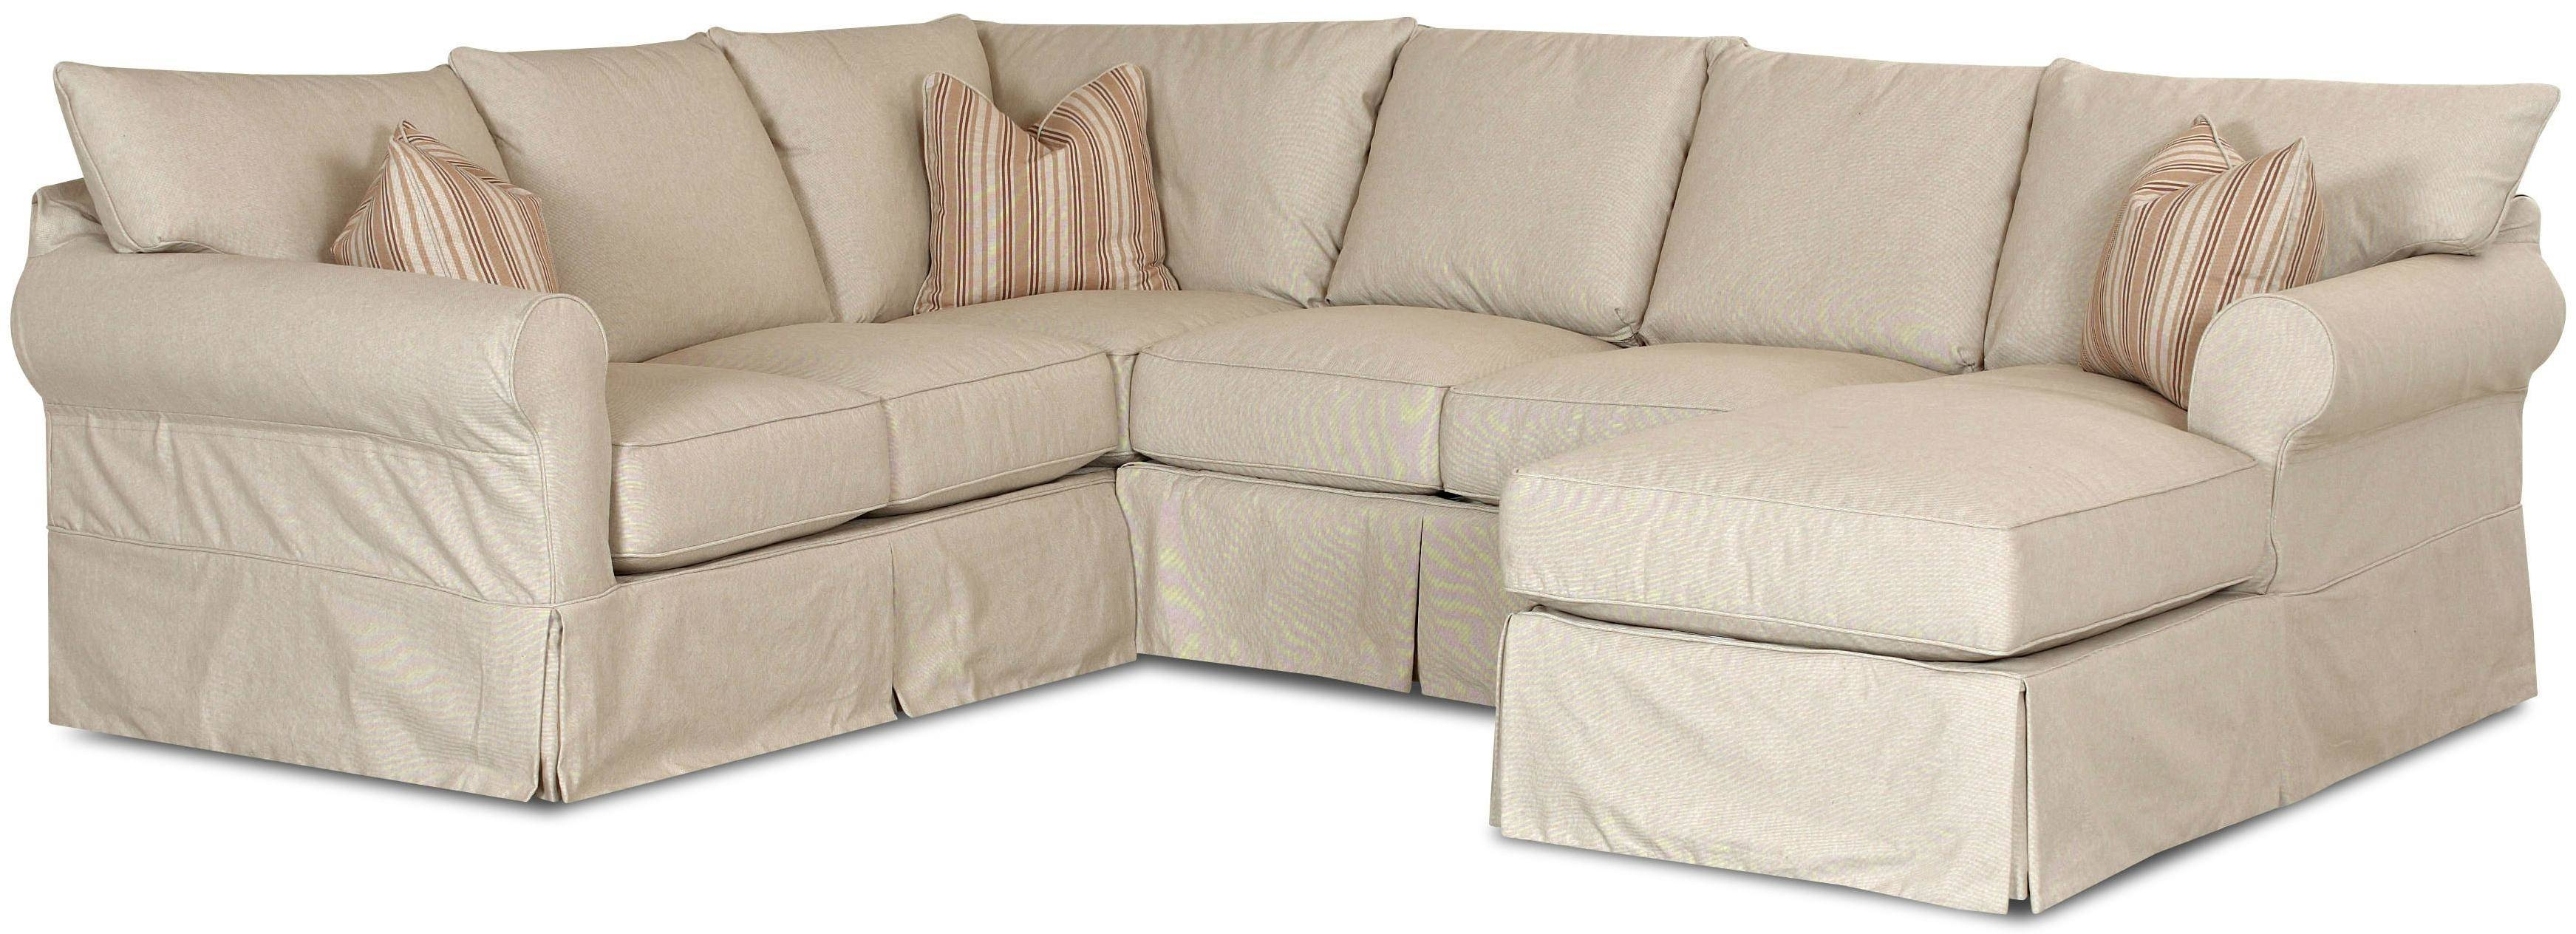 Sofas Center : Slipcoverednal Sofa Washable Sofas With Chaise With Regard  To Washable Sofas (Image